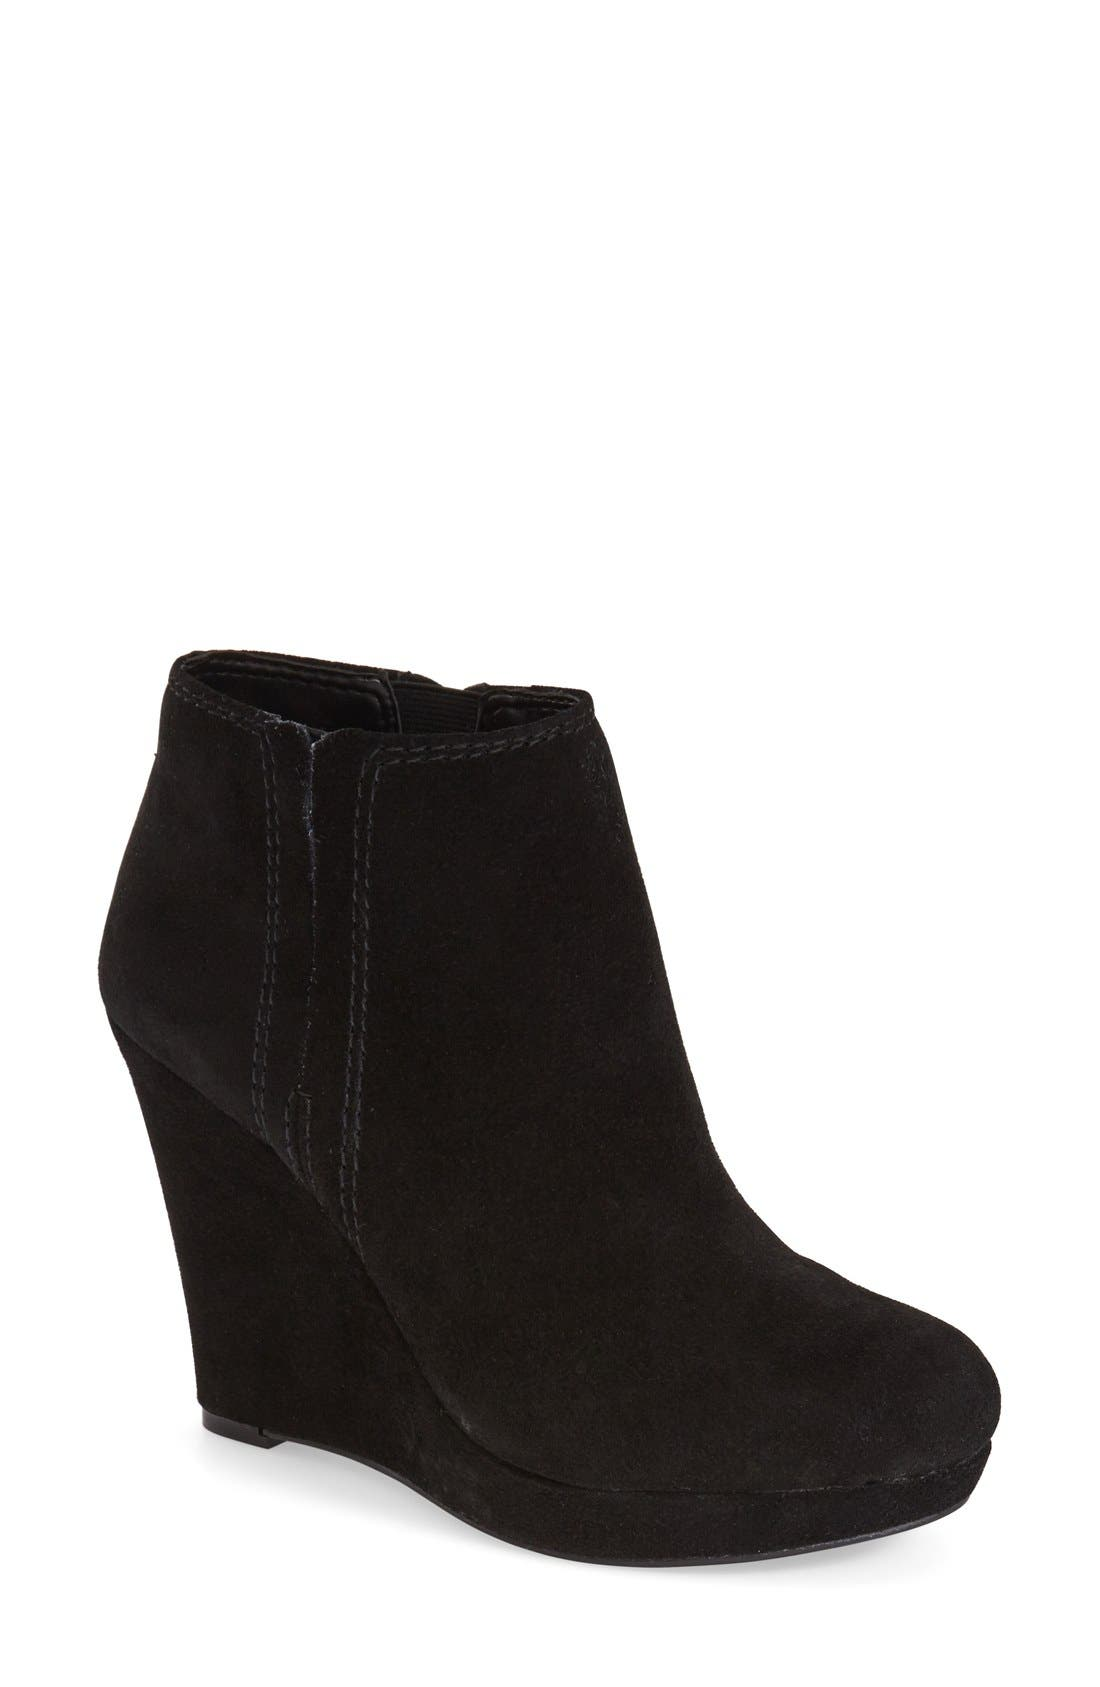 Alternate Image 1 Selected - Jessica Simpson 'Calwell' Wedge Bootie(Women)